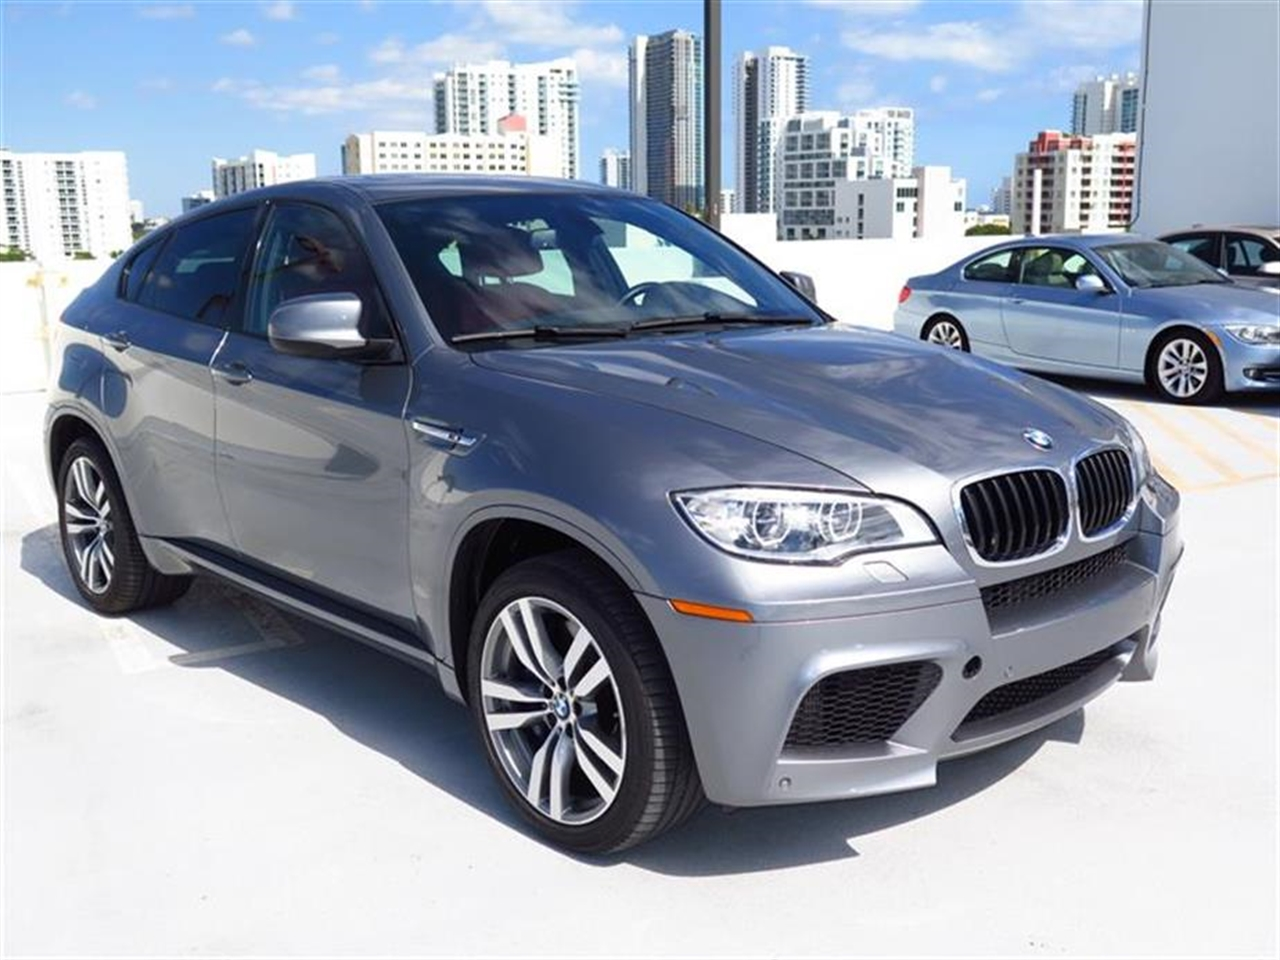 2013 BMW X6 M AWD 4dr 20891 miles 20-way power multi-contour front buckets seats -inc standard 1